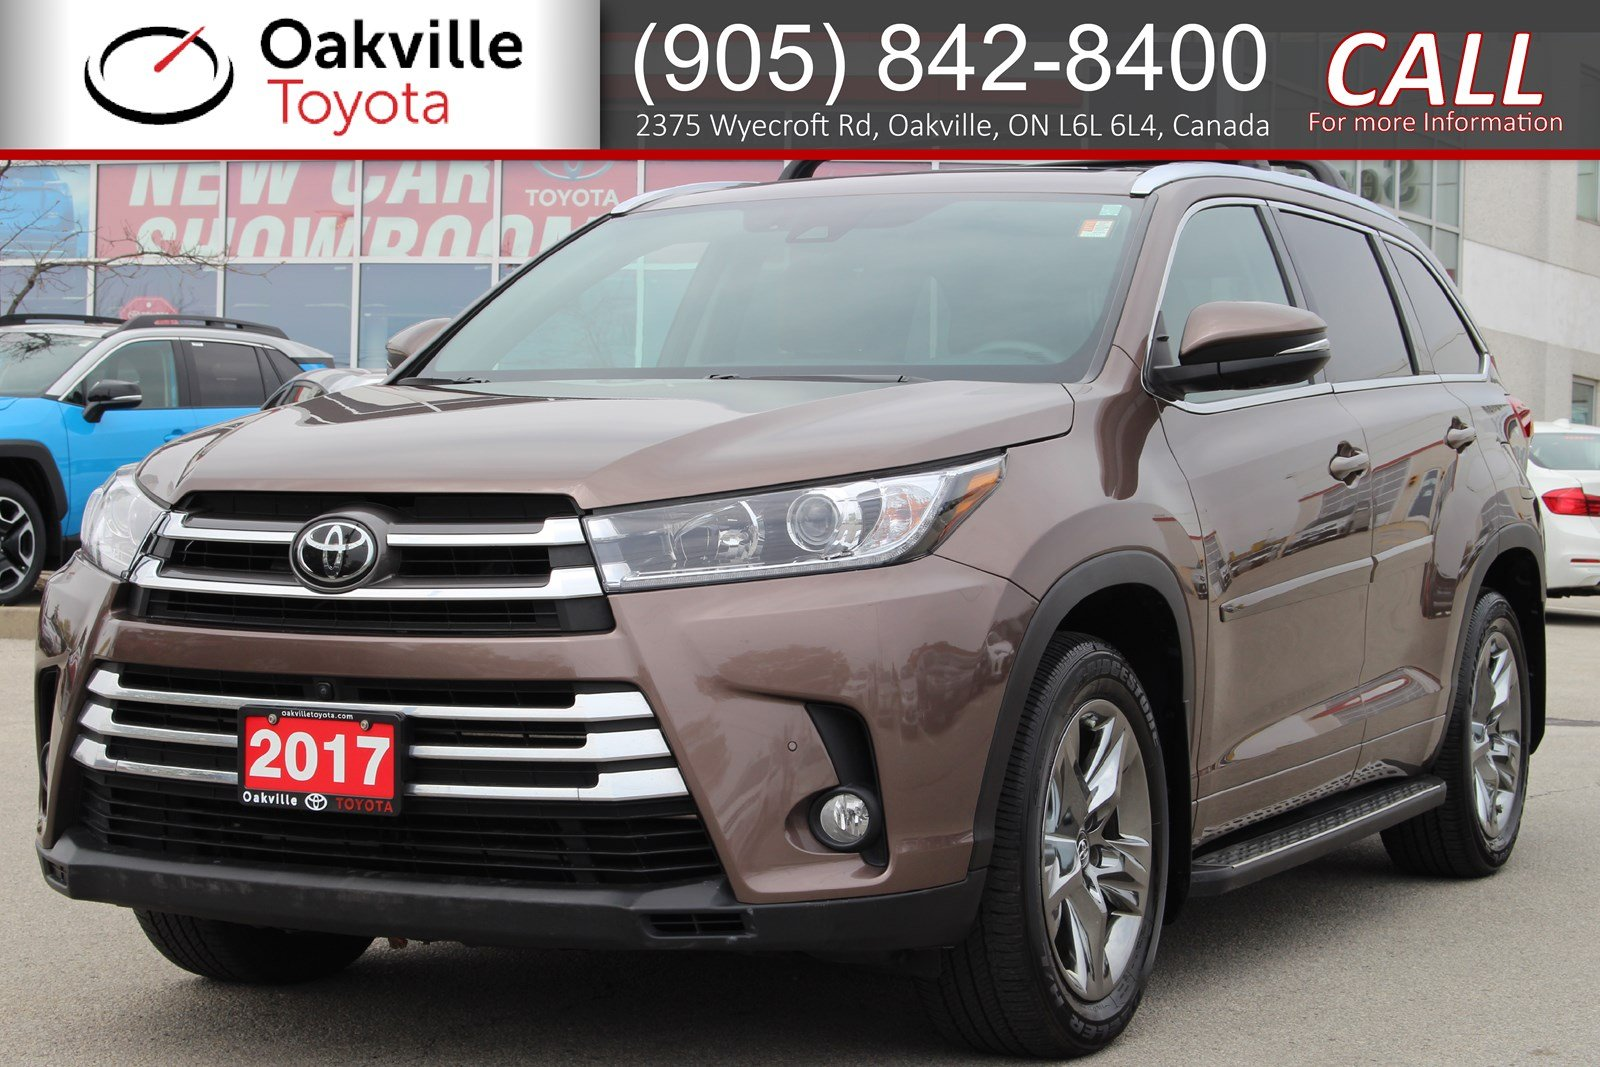 Pre-Owned 2017 Toyota Highlander Limited AWD with Running Boards and Clean Carfax